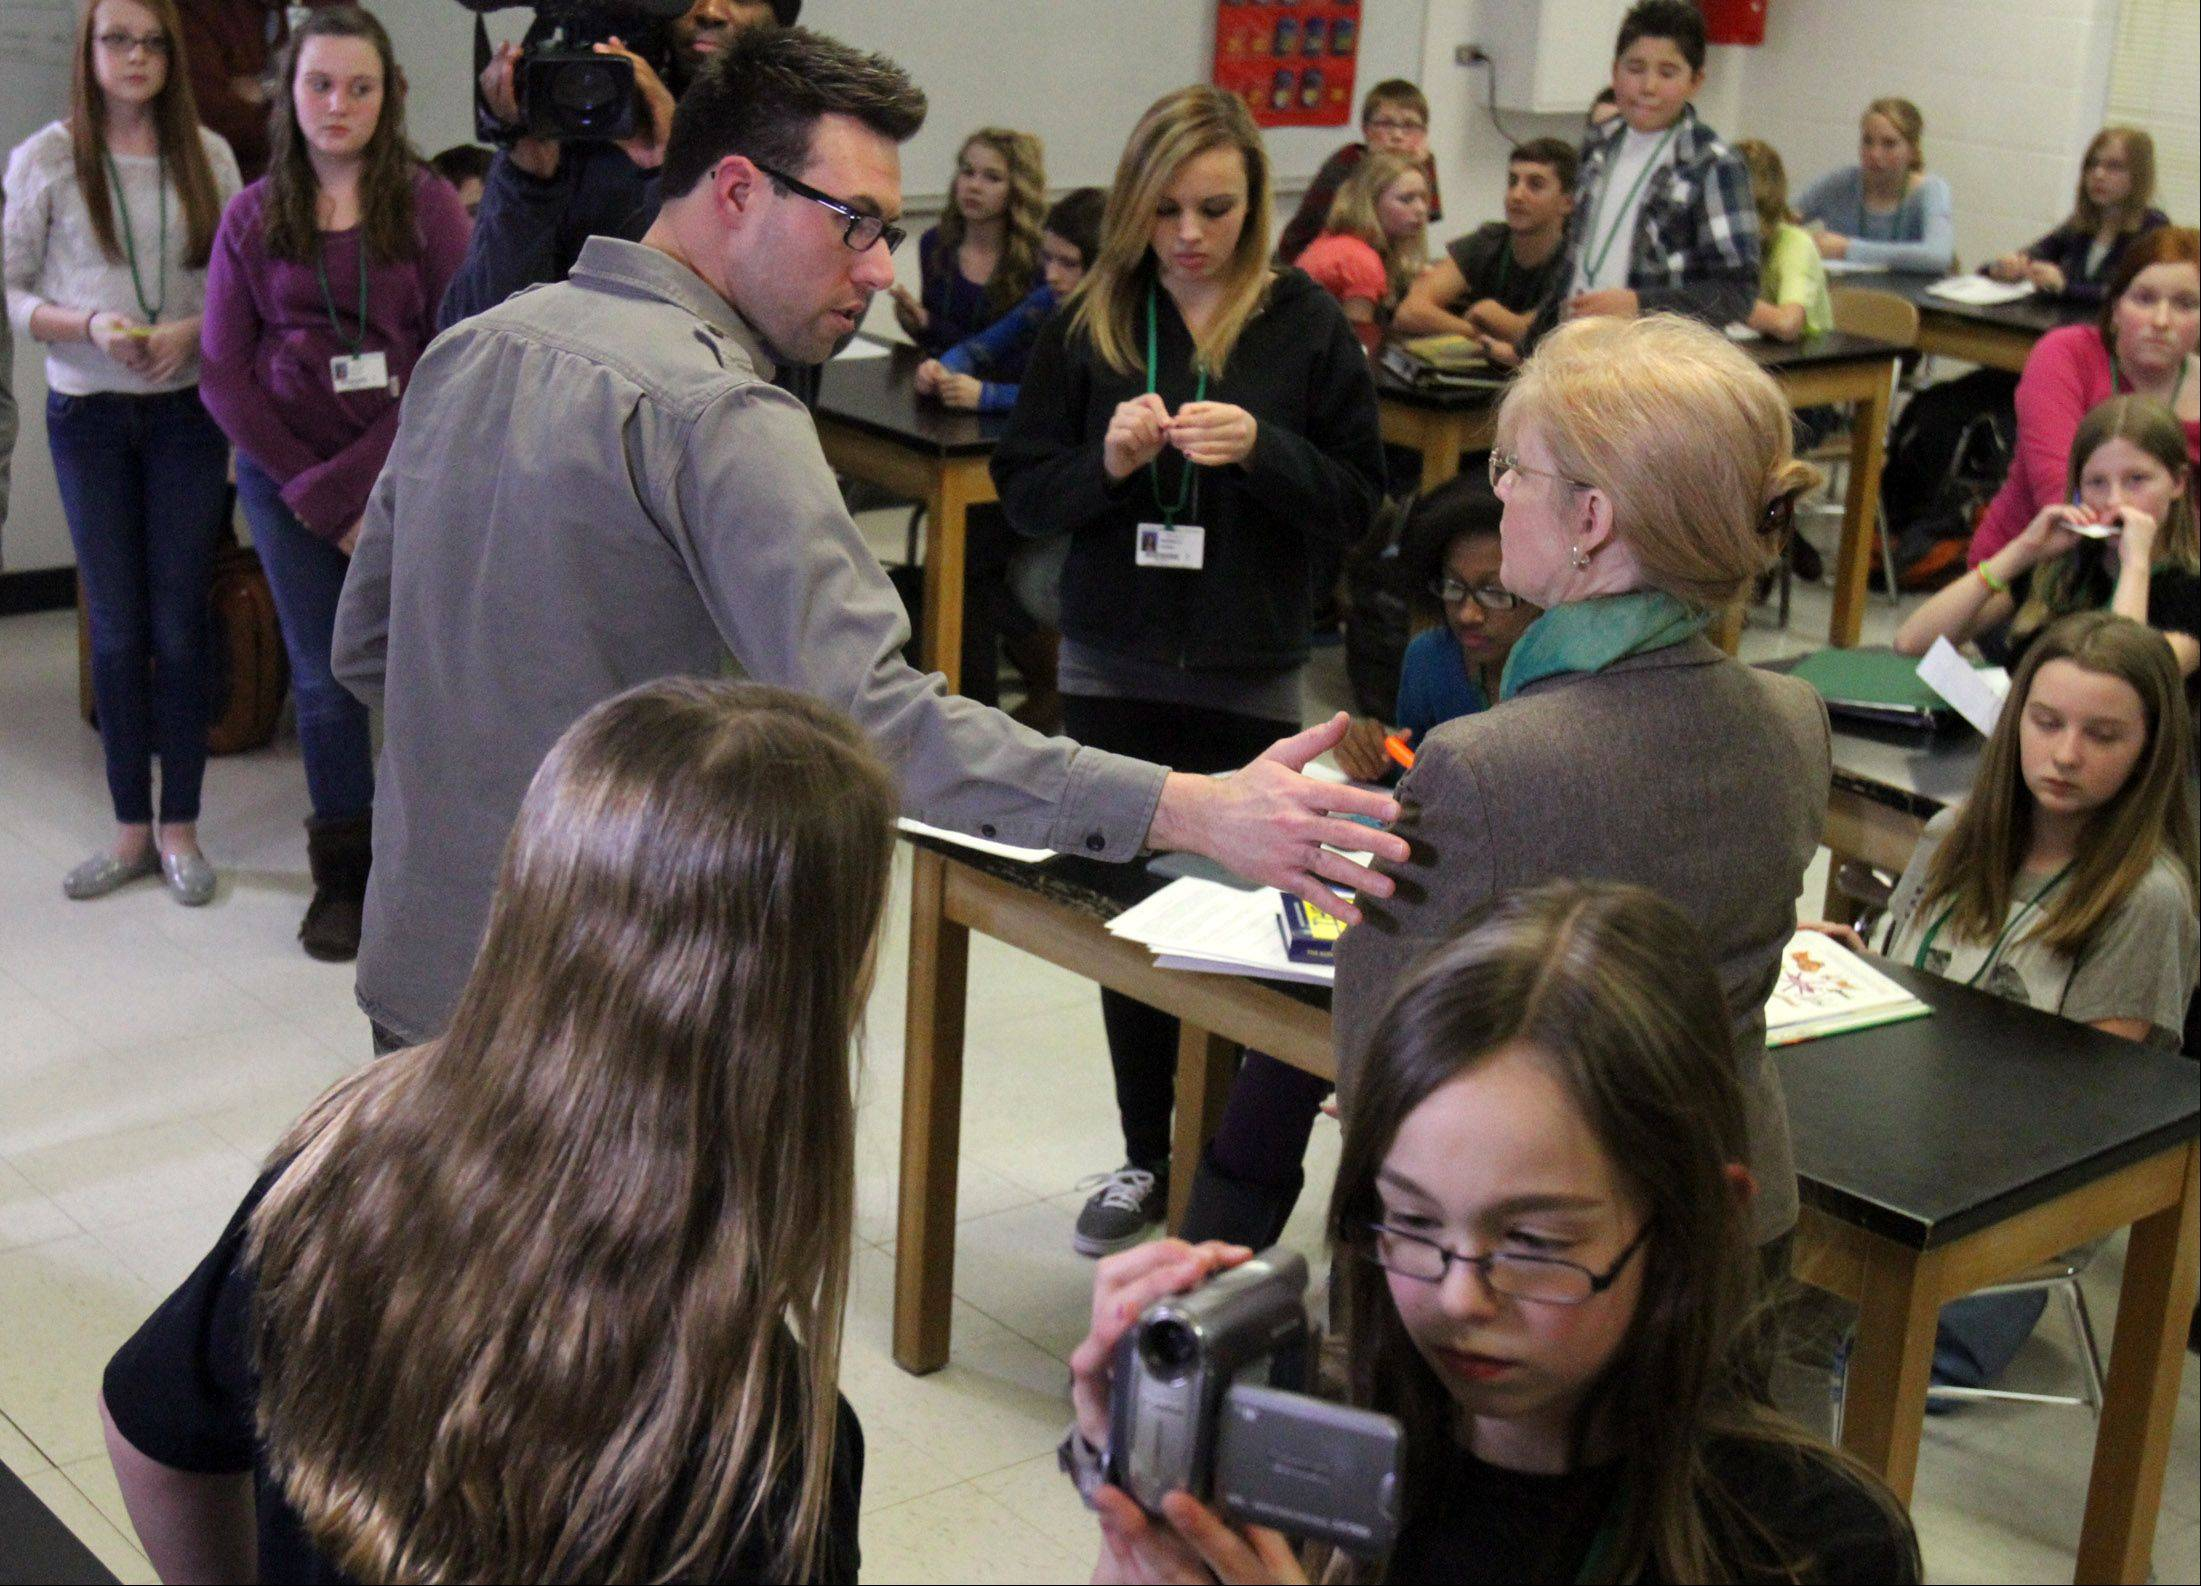 Matt Till, a Columbia College instructor, directs Woodland Middle School teacher Ellen Crahan for a video shot at the school in Gurnee on Friday.